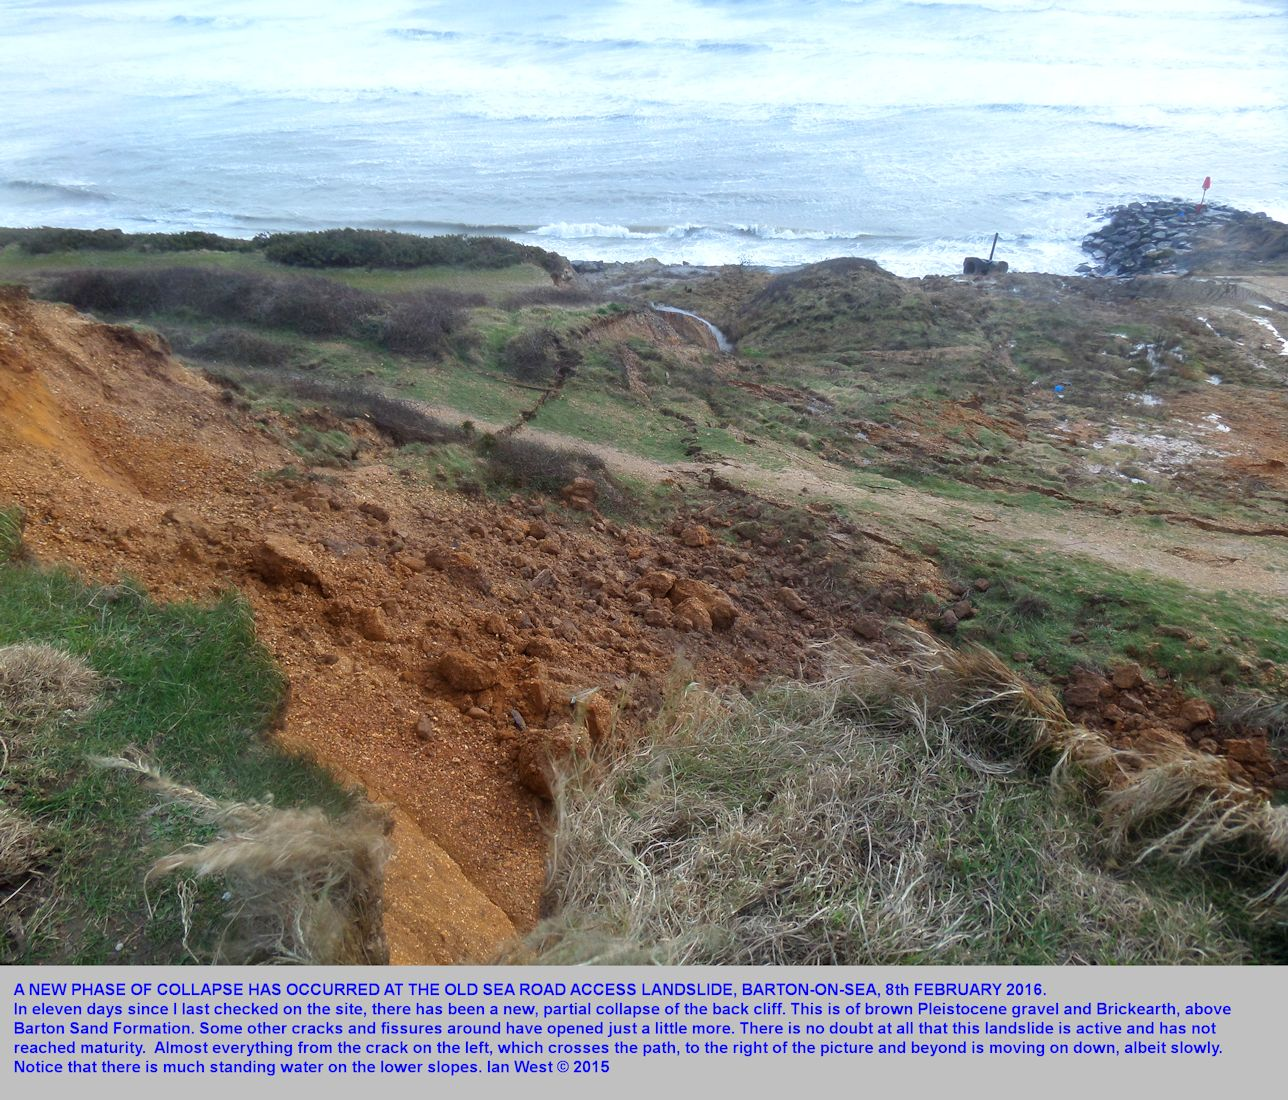 Further collapse of the back cliff of Pleistocene gravel and Brickearth at the old Sea Road Access, 9th February 2016